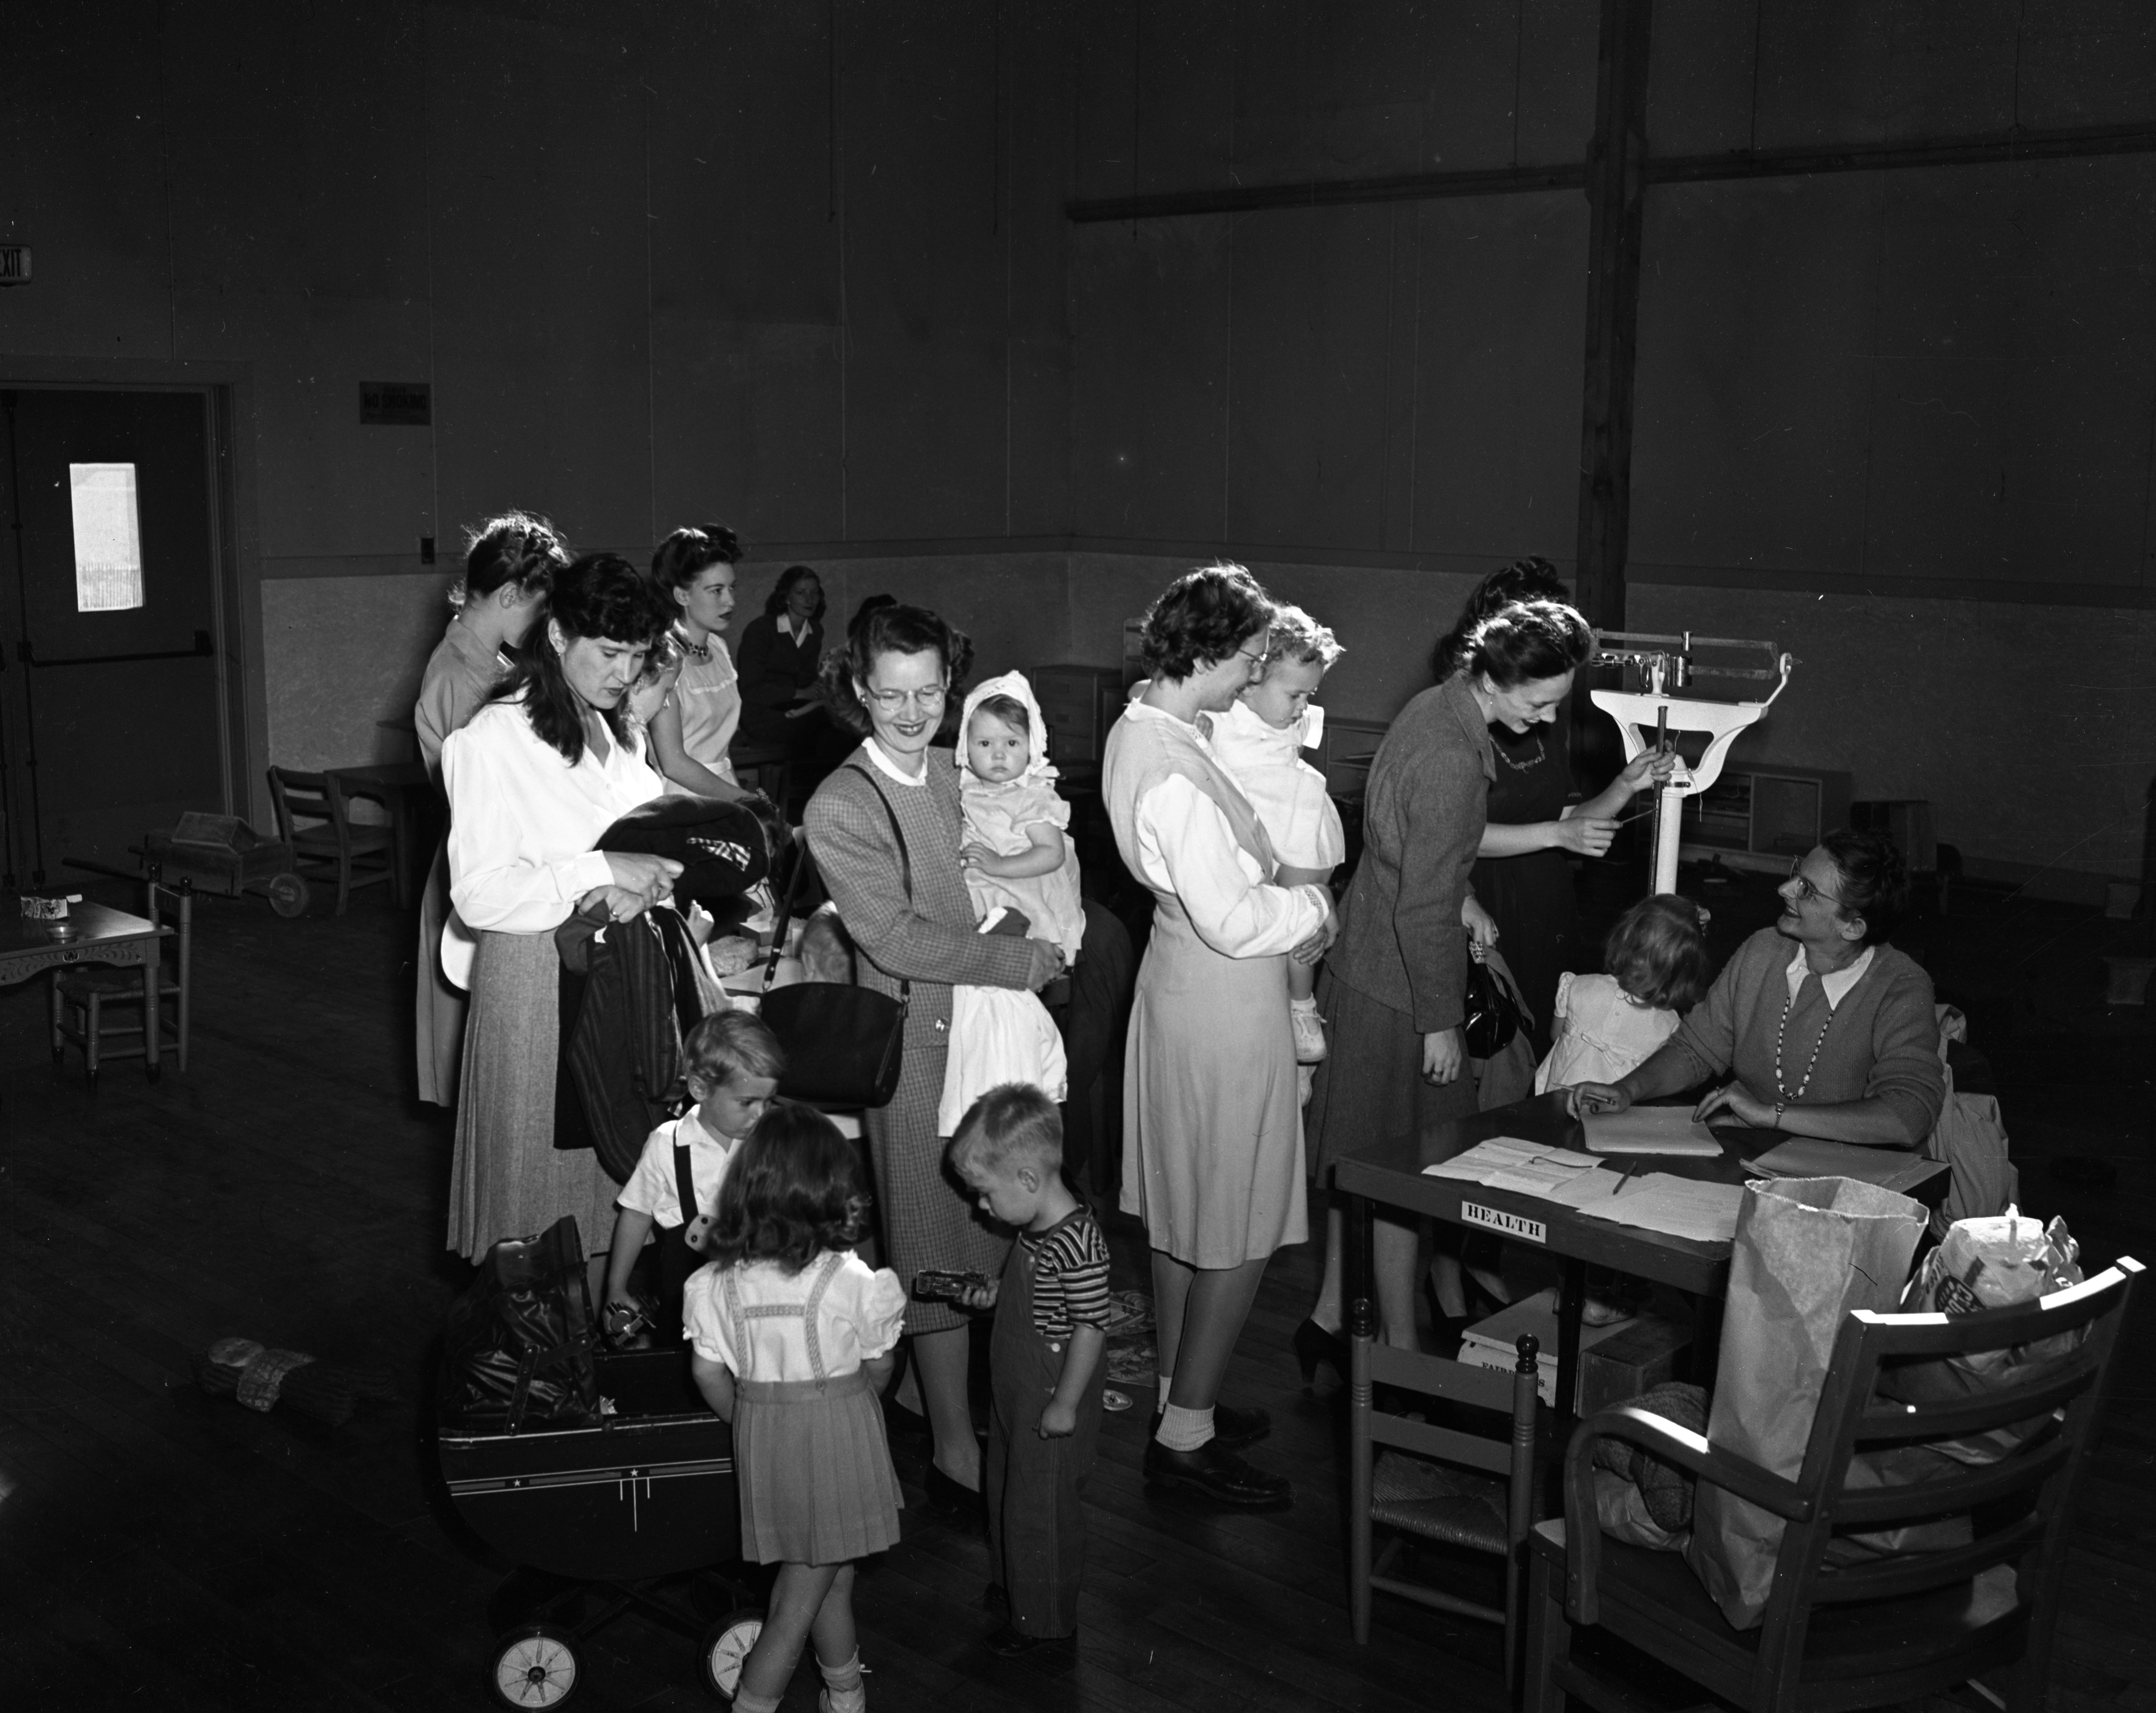 Registration day at the Co-operative nursery in Willow Village, September 1946 image